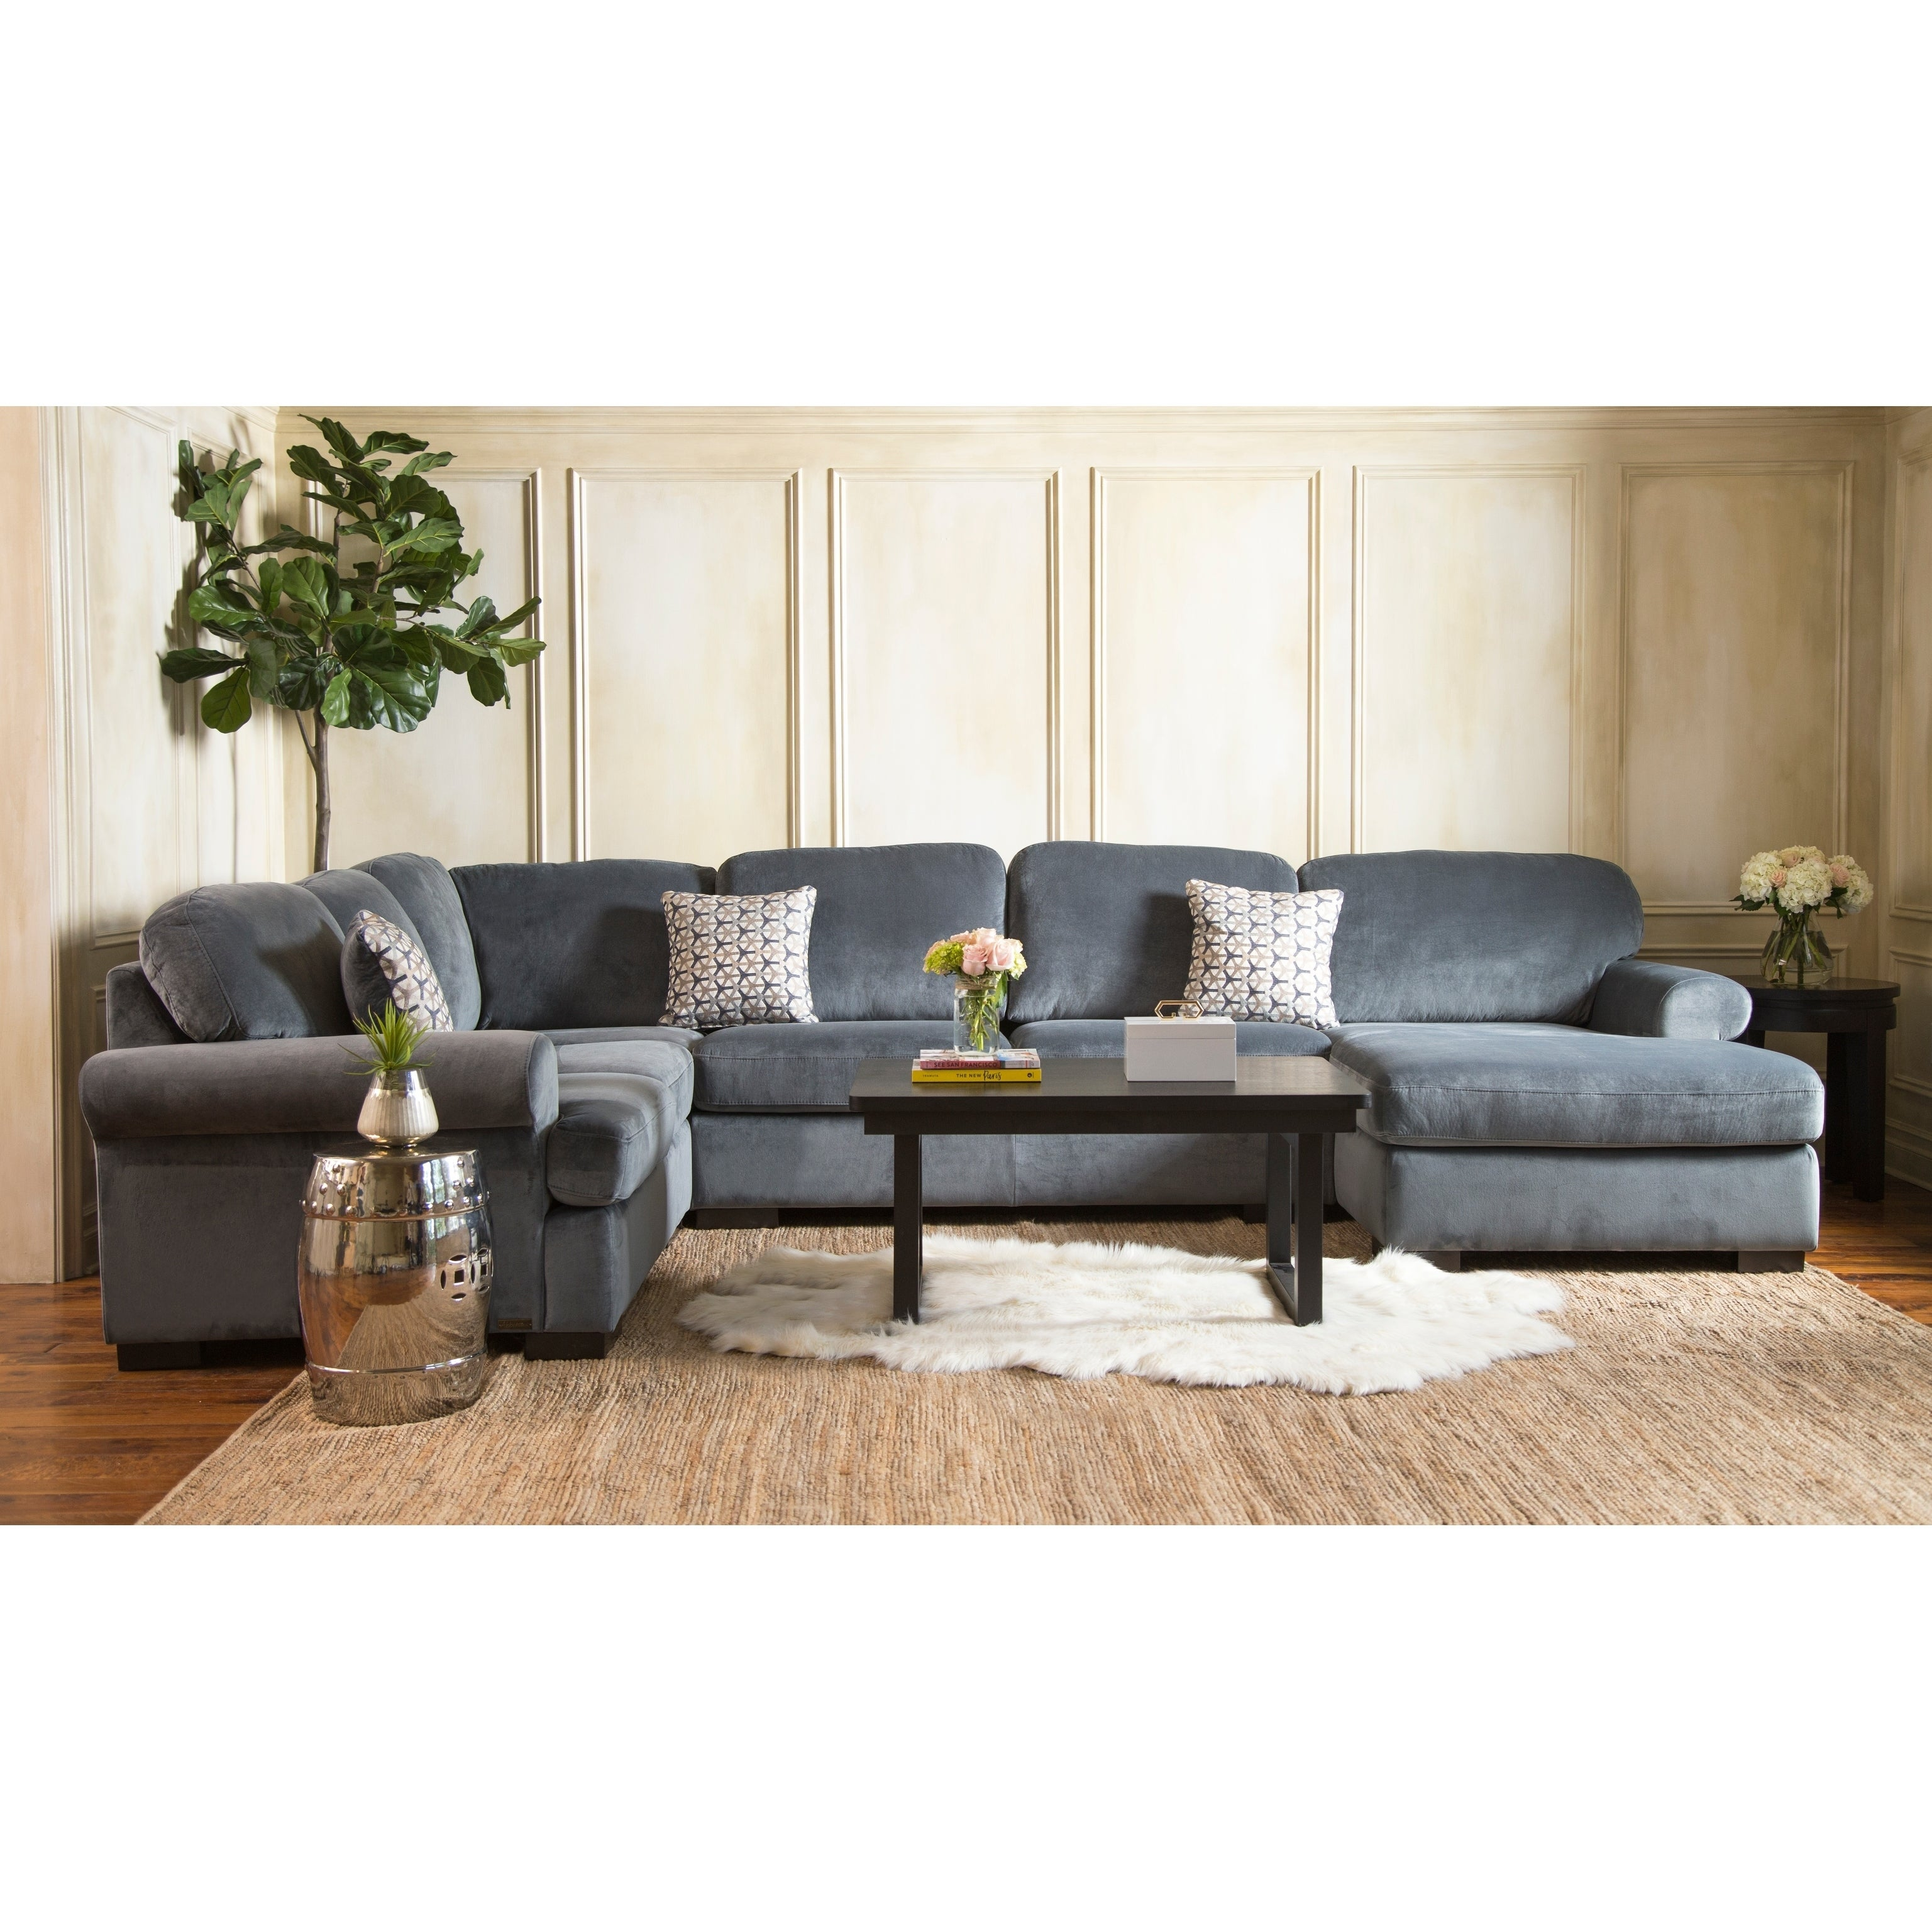 Miraculous Buy U Shape Sectional Sofas Online At Overstock Our Best Theyellowbook Wood Chair Design Ideas Theyellowbookinfo